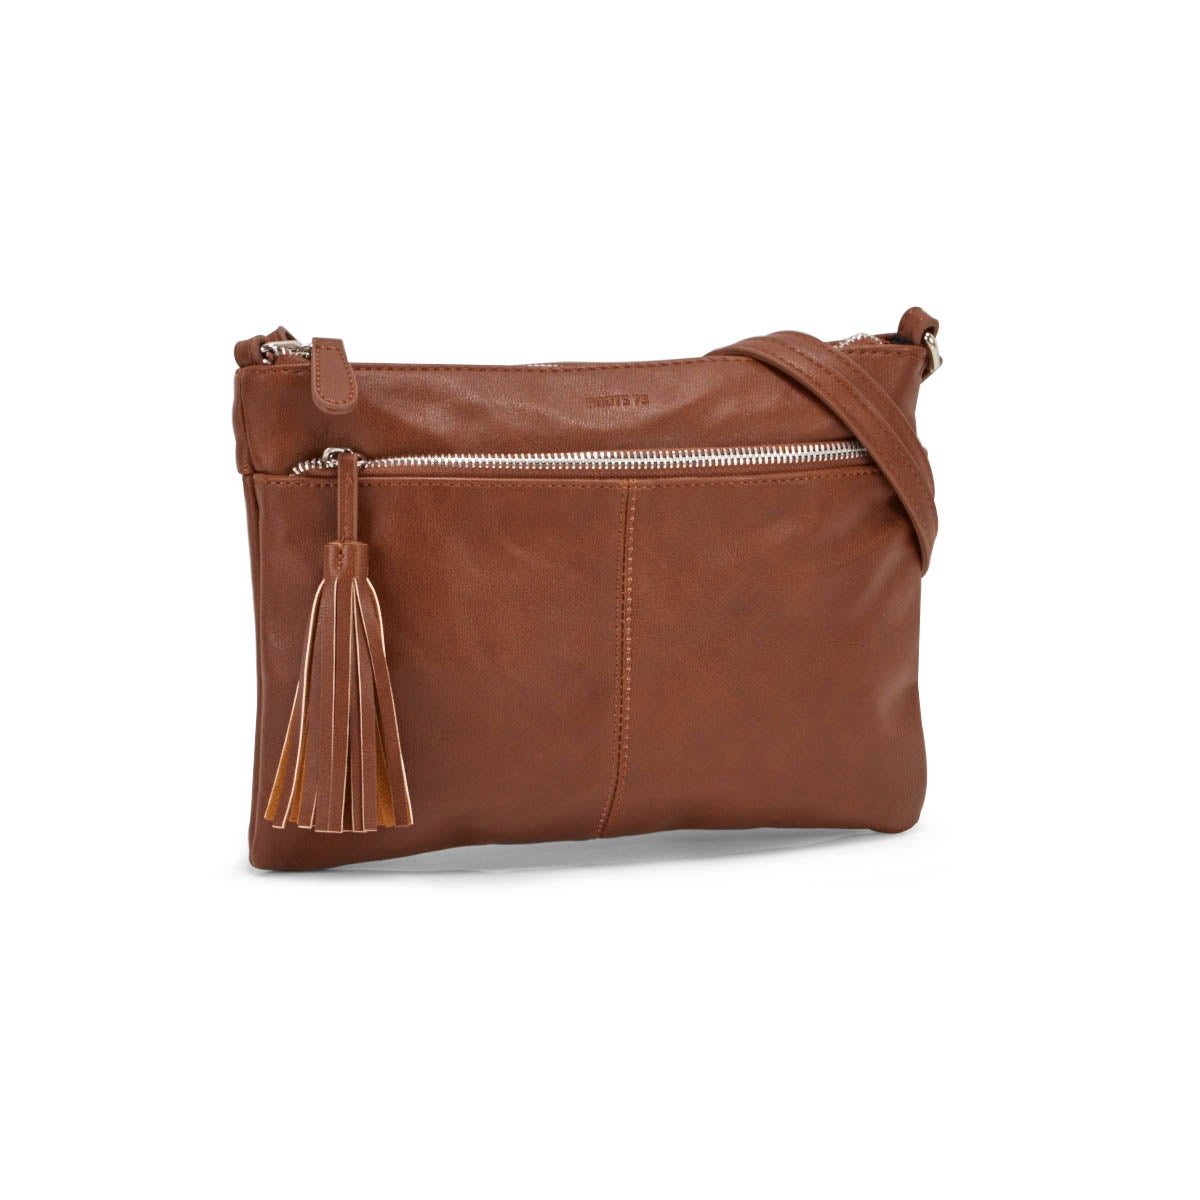 Lds Roots73 cognac tassel crossbody